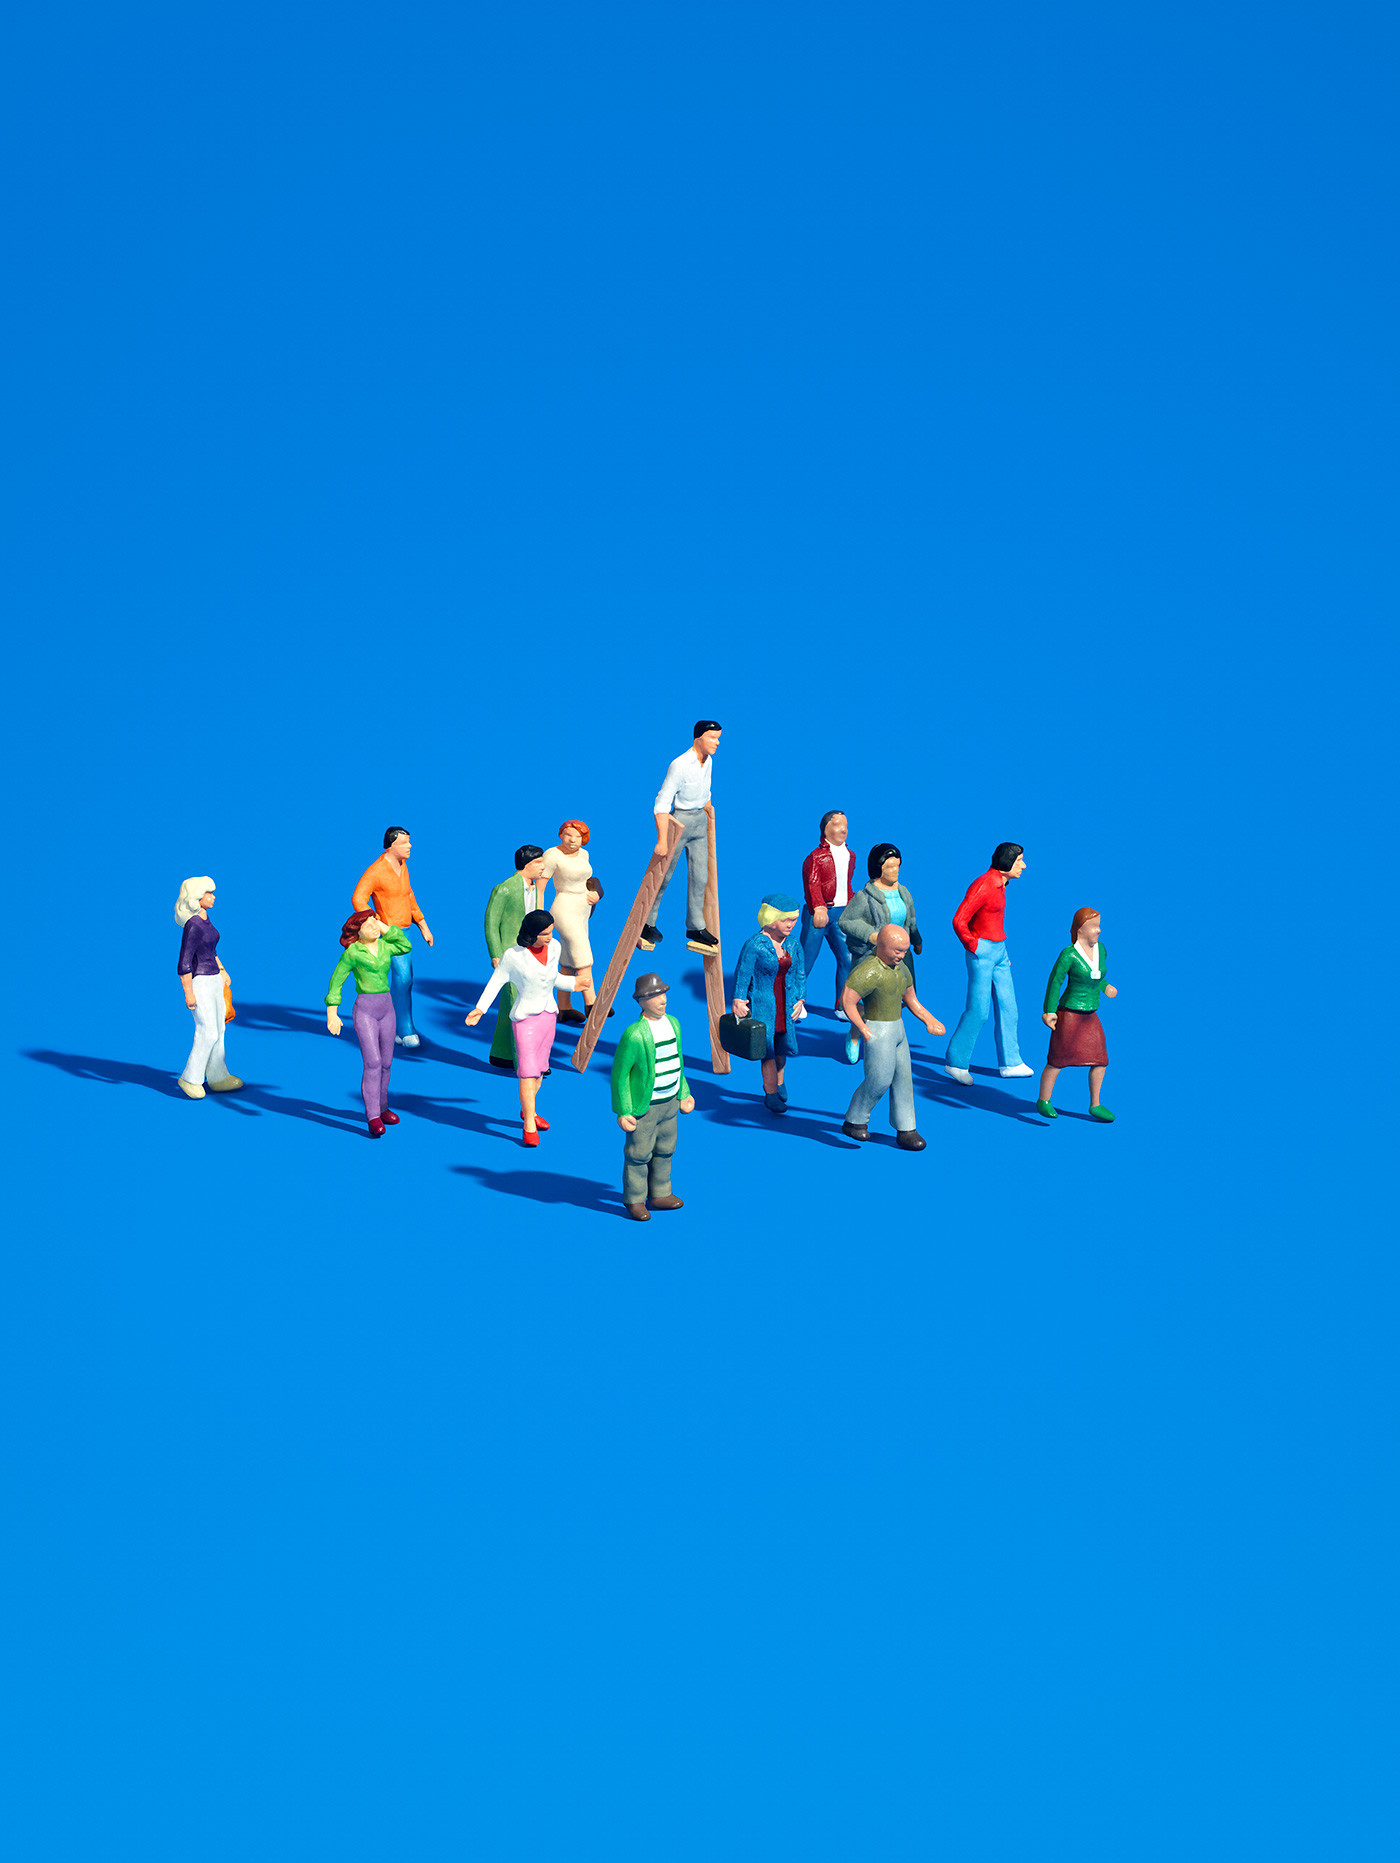 https://tickertapecdn.tdameritrade.com/assets/images/pages/md/Crowd of miniature people moving in one direction with a figure walking in stilts leading the way